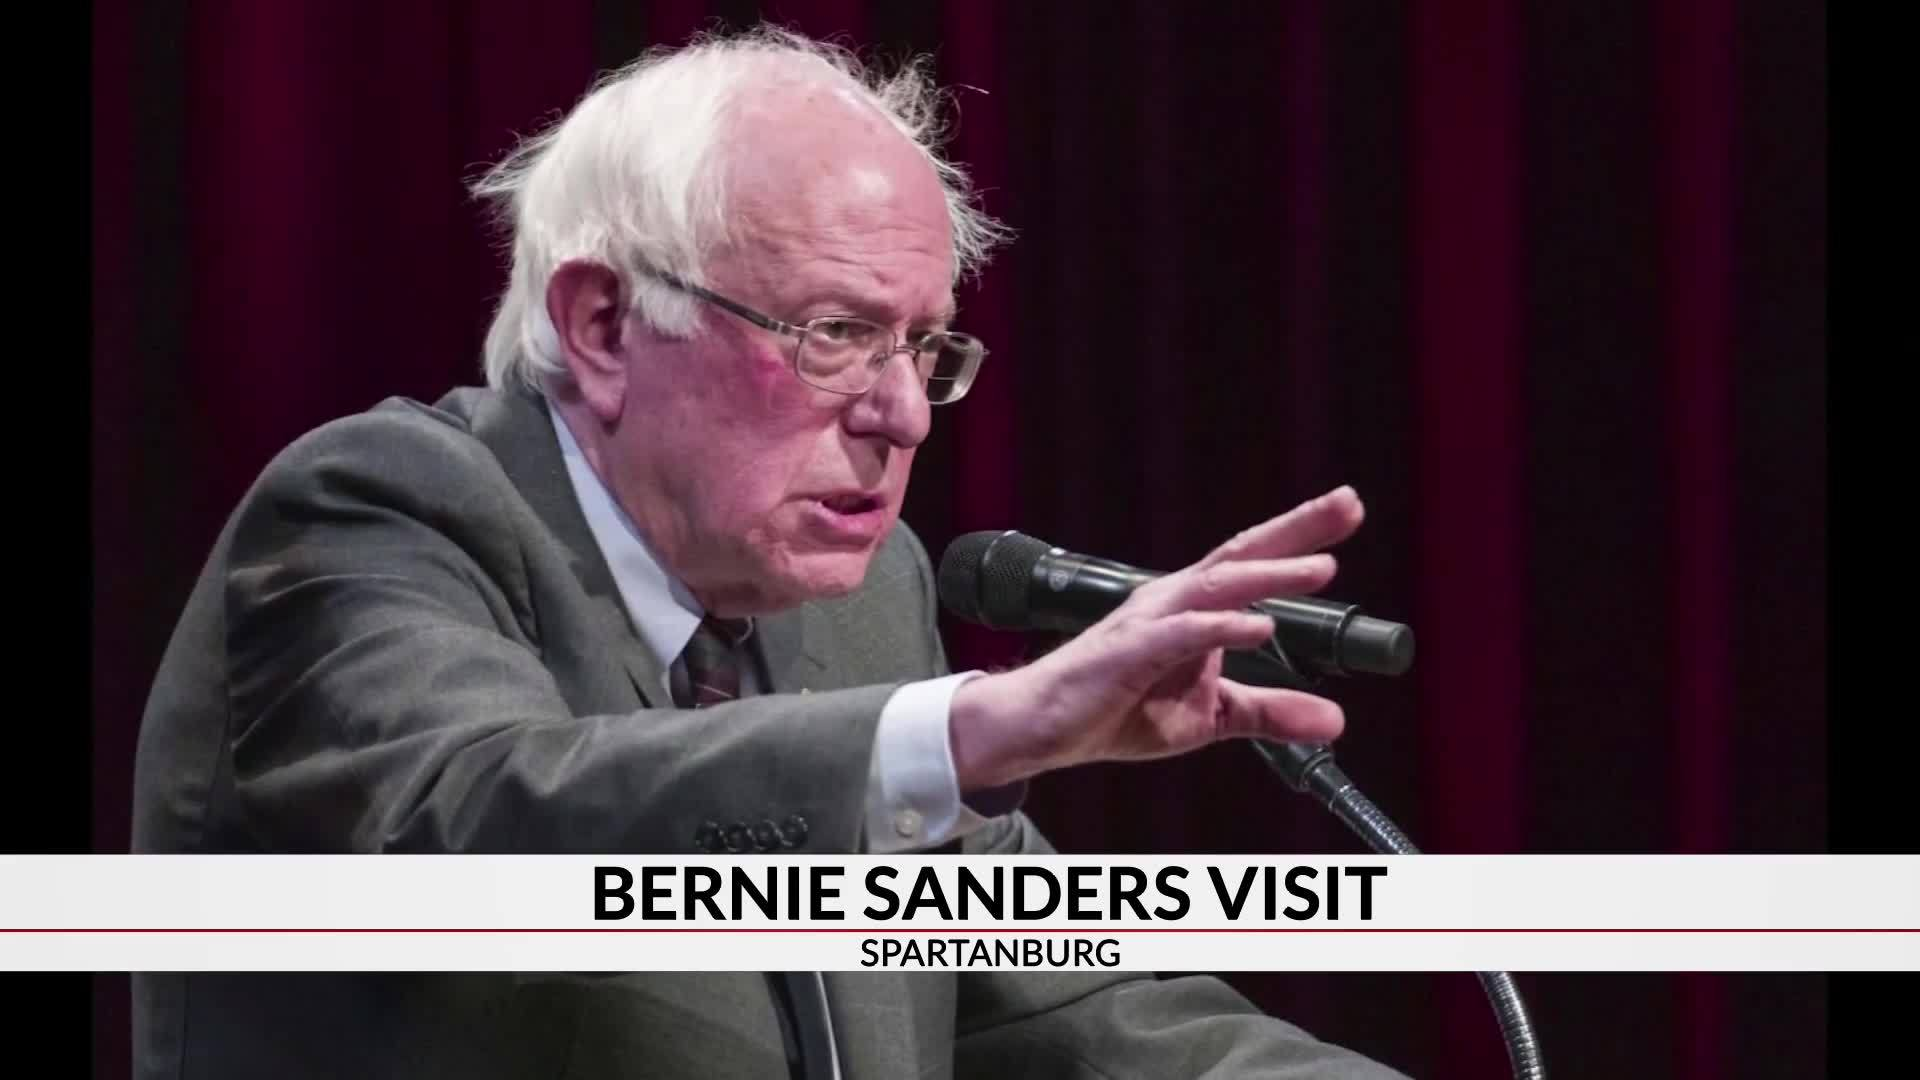 Bernie_Sanders_to_visit_Spartanburg_6_20190413032957